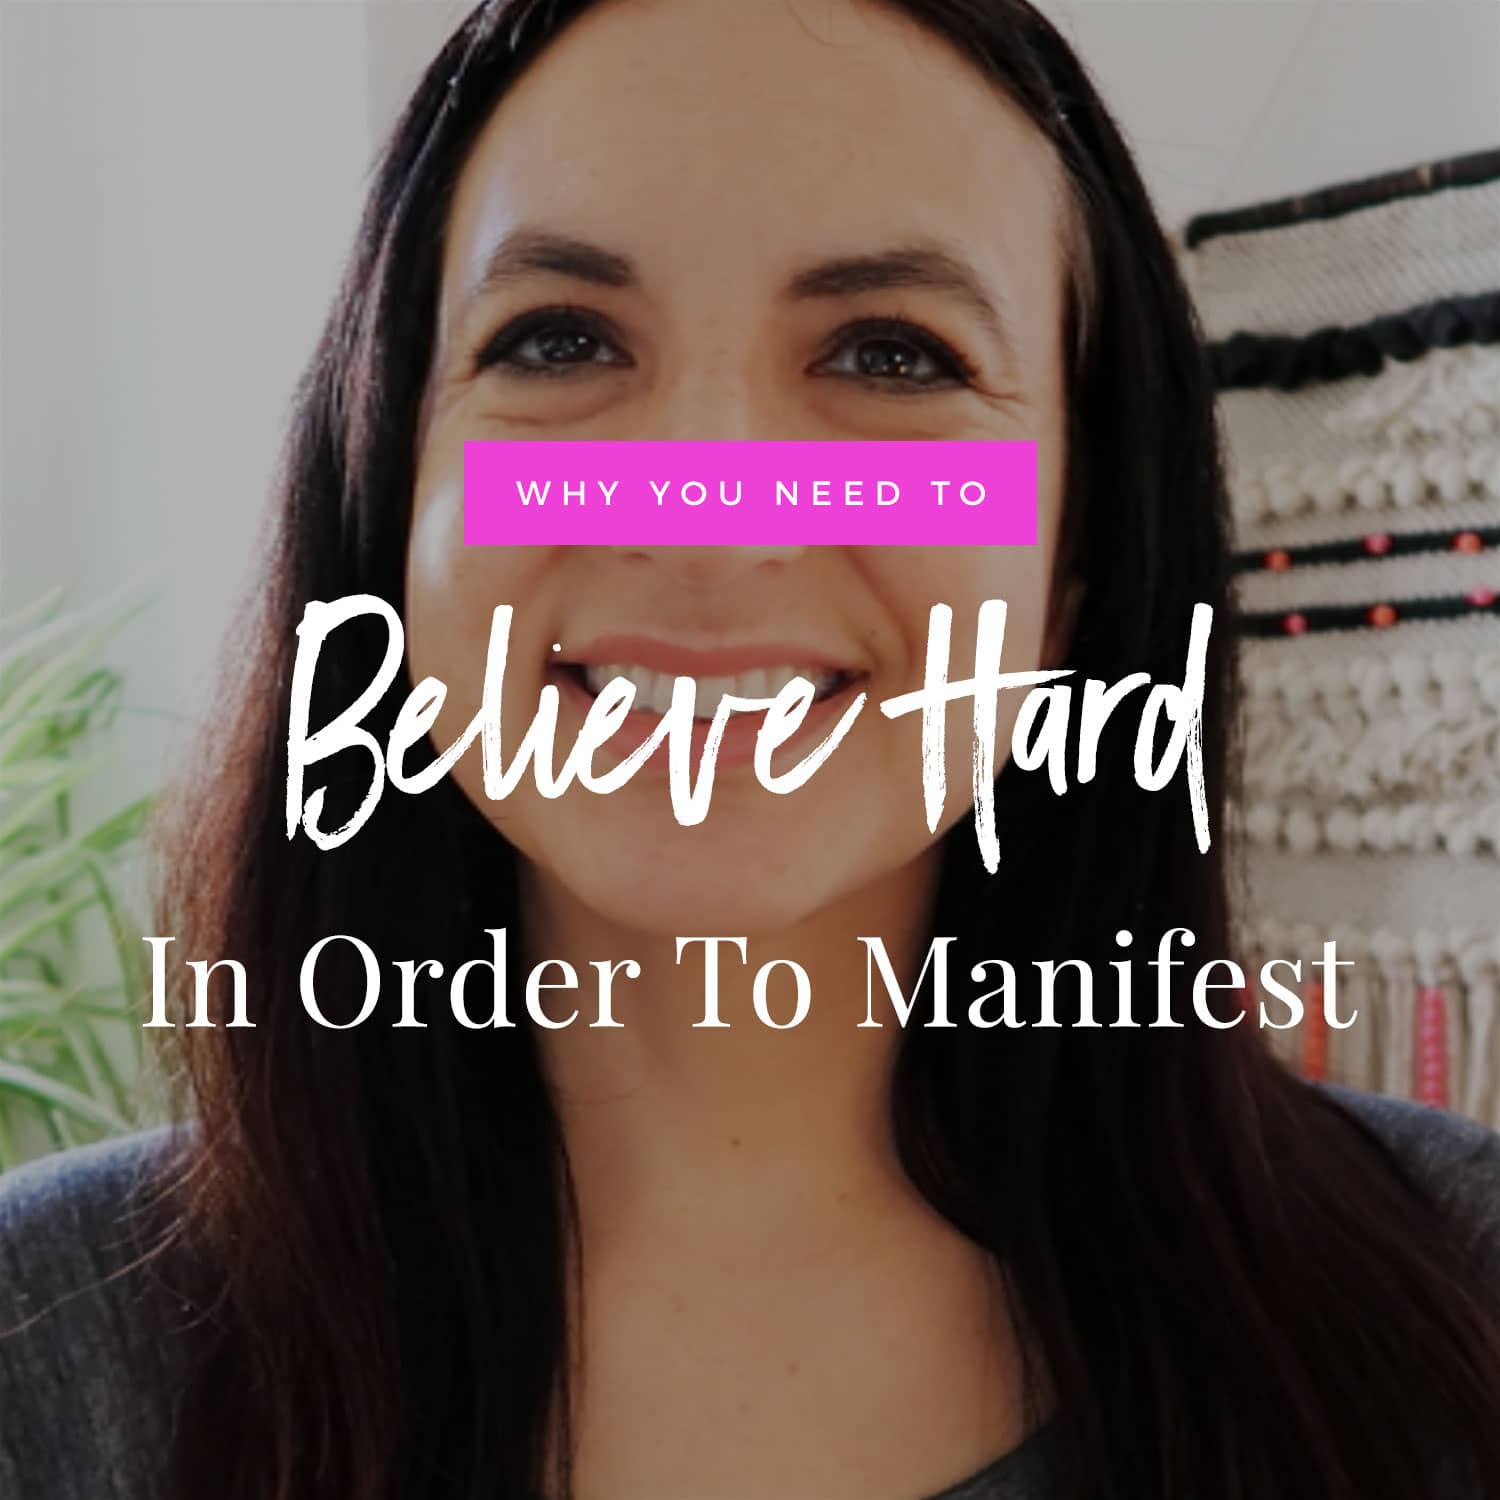 Why You Need To Believe Hard In Order To Manifest